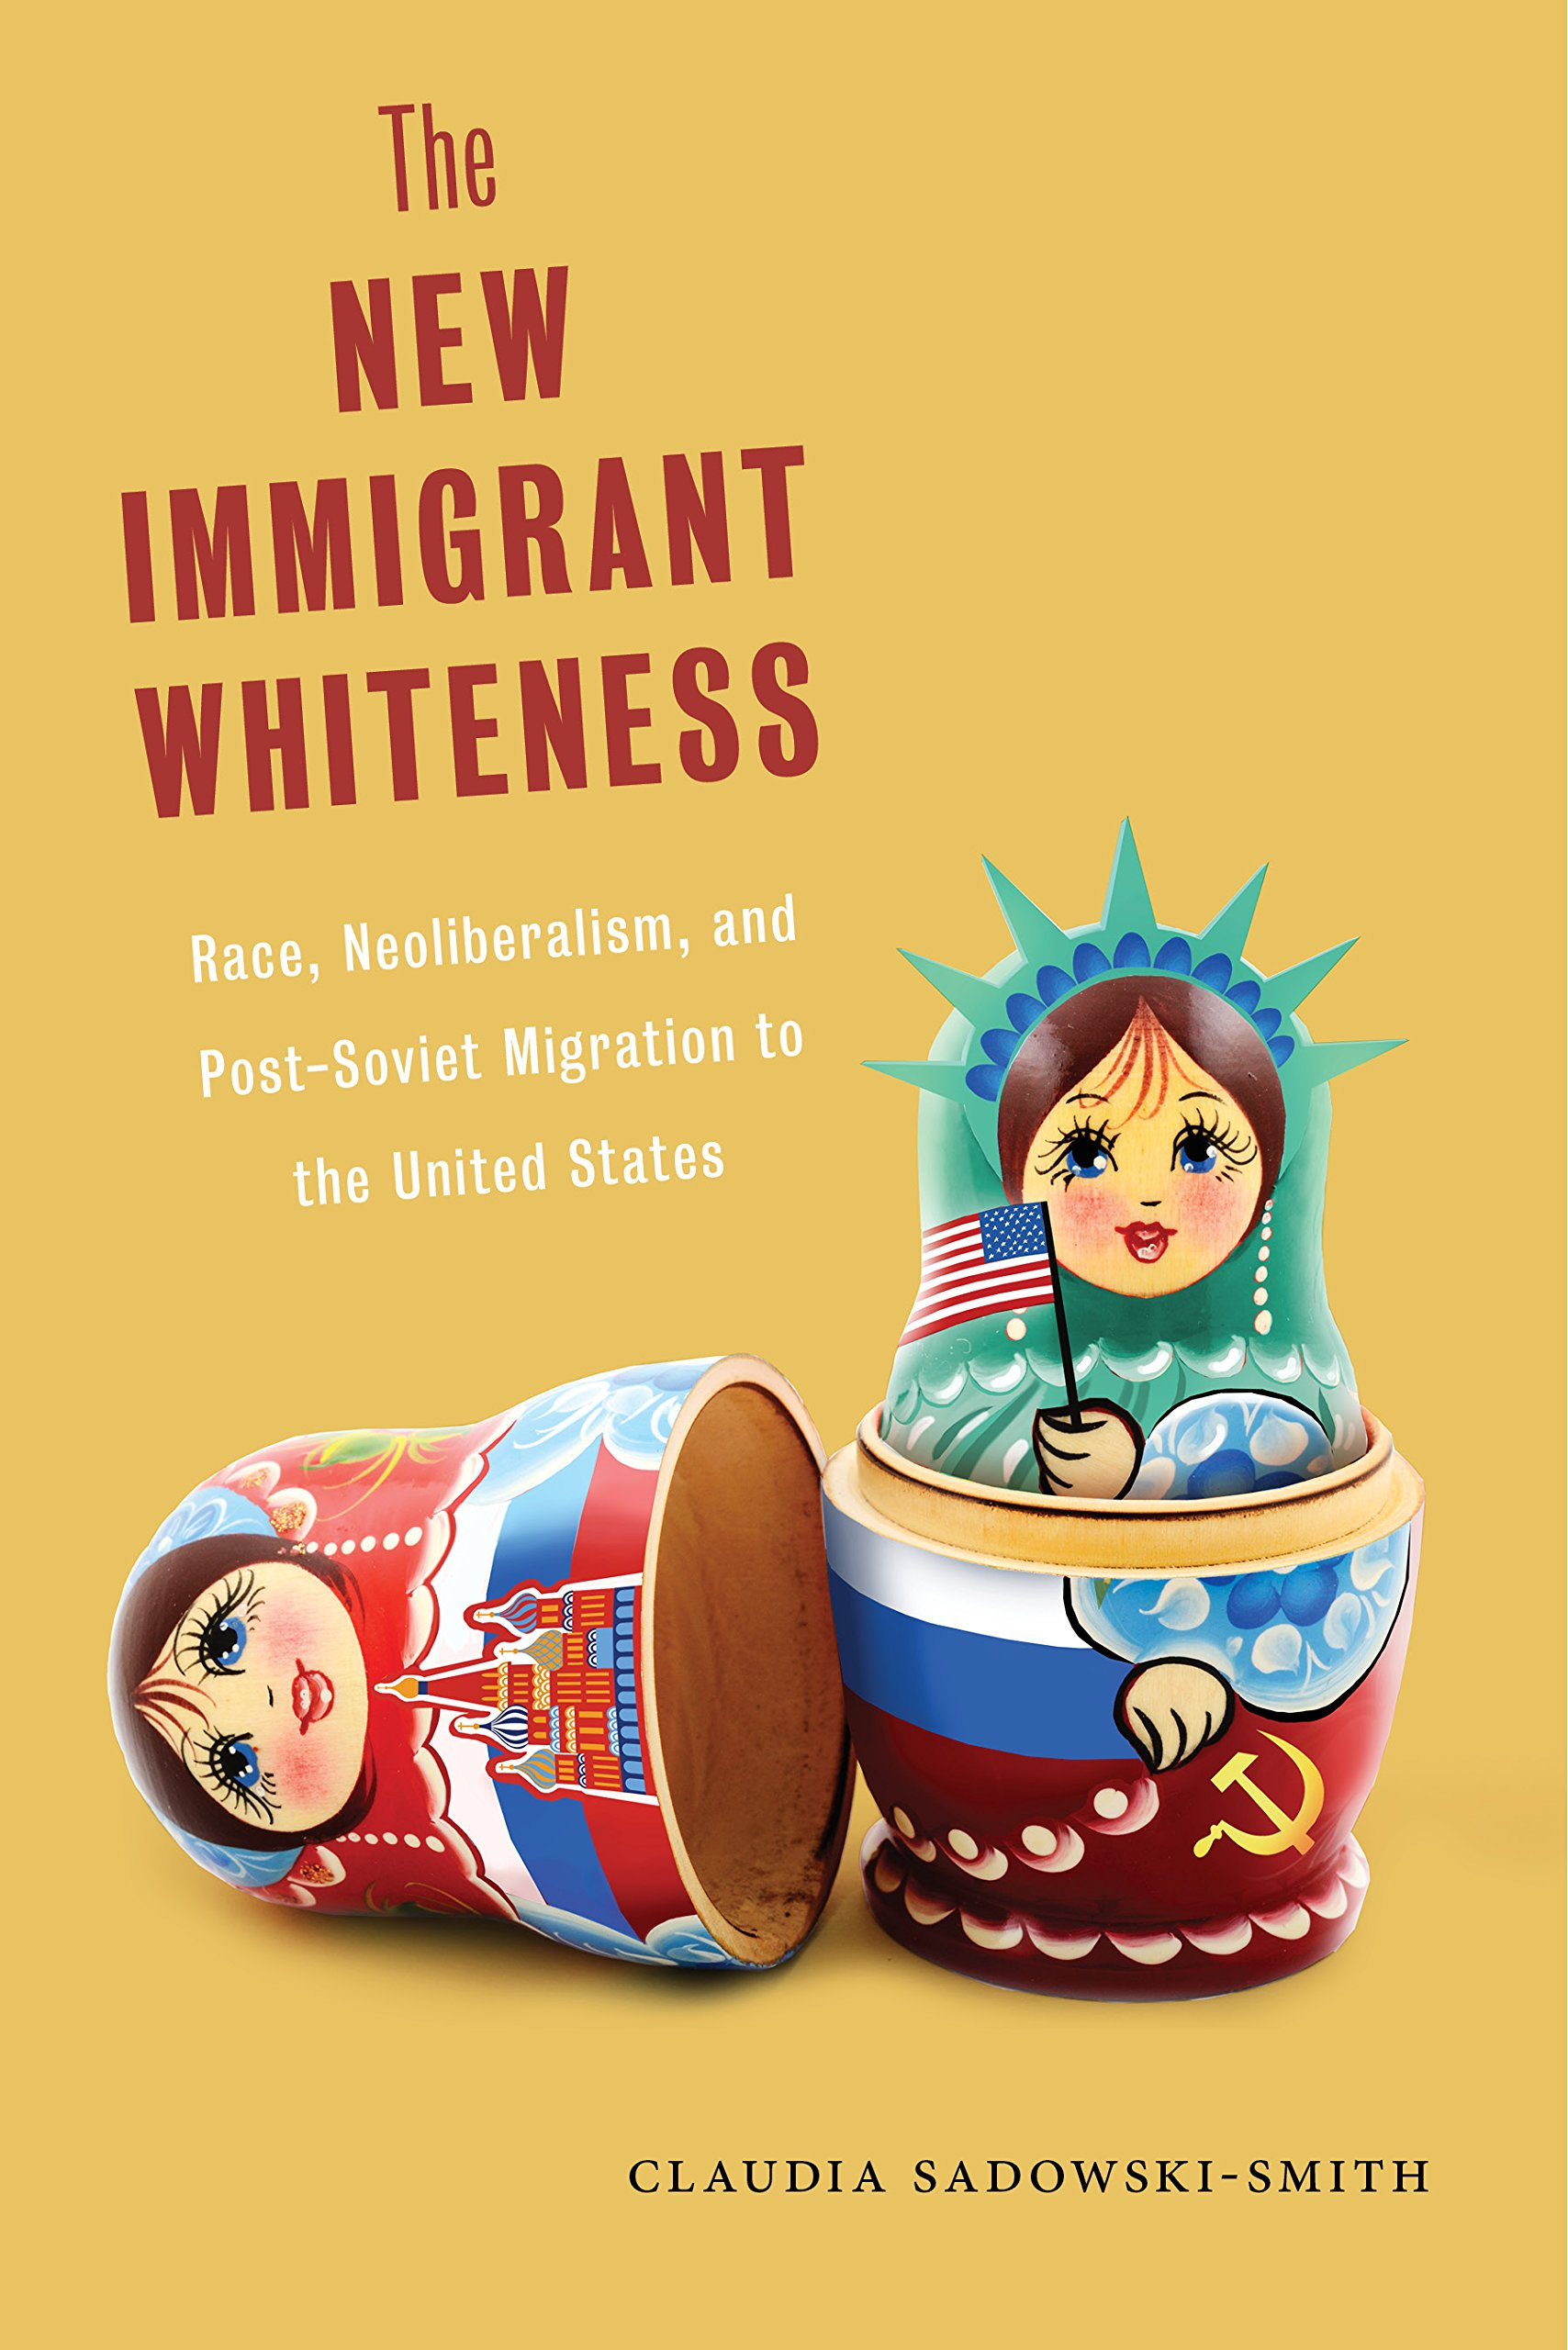 The New Immigrant Whiteness: Race, Neoliberalism, and Post-Soviet Migration to the United States (Nation of Nations) PDF